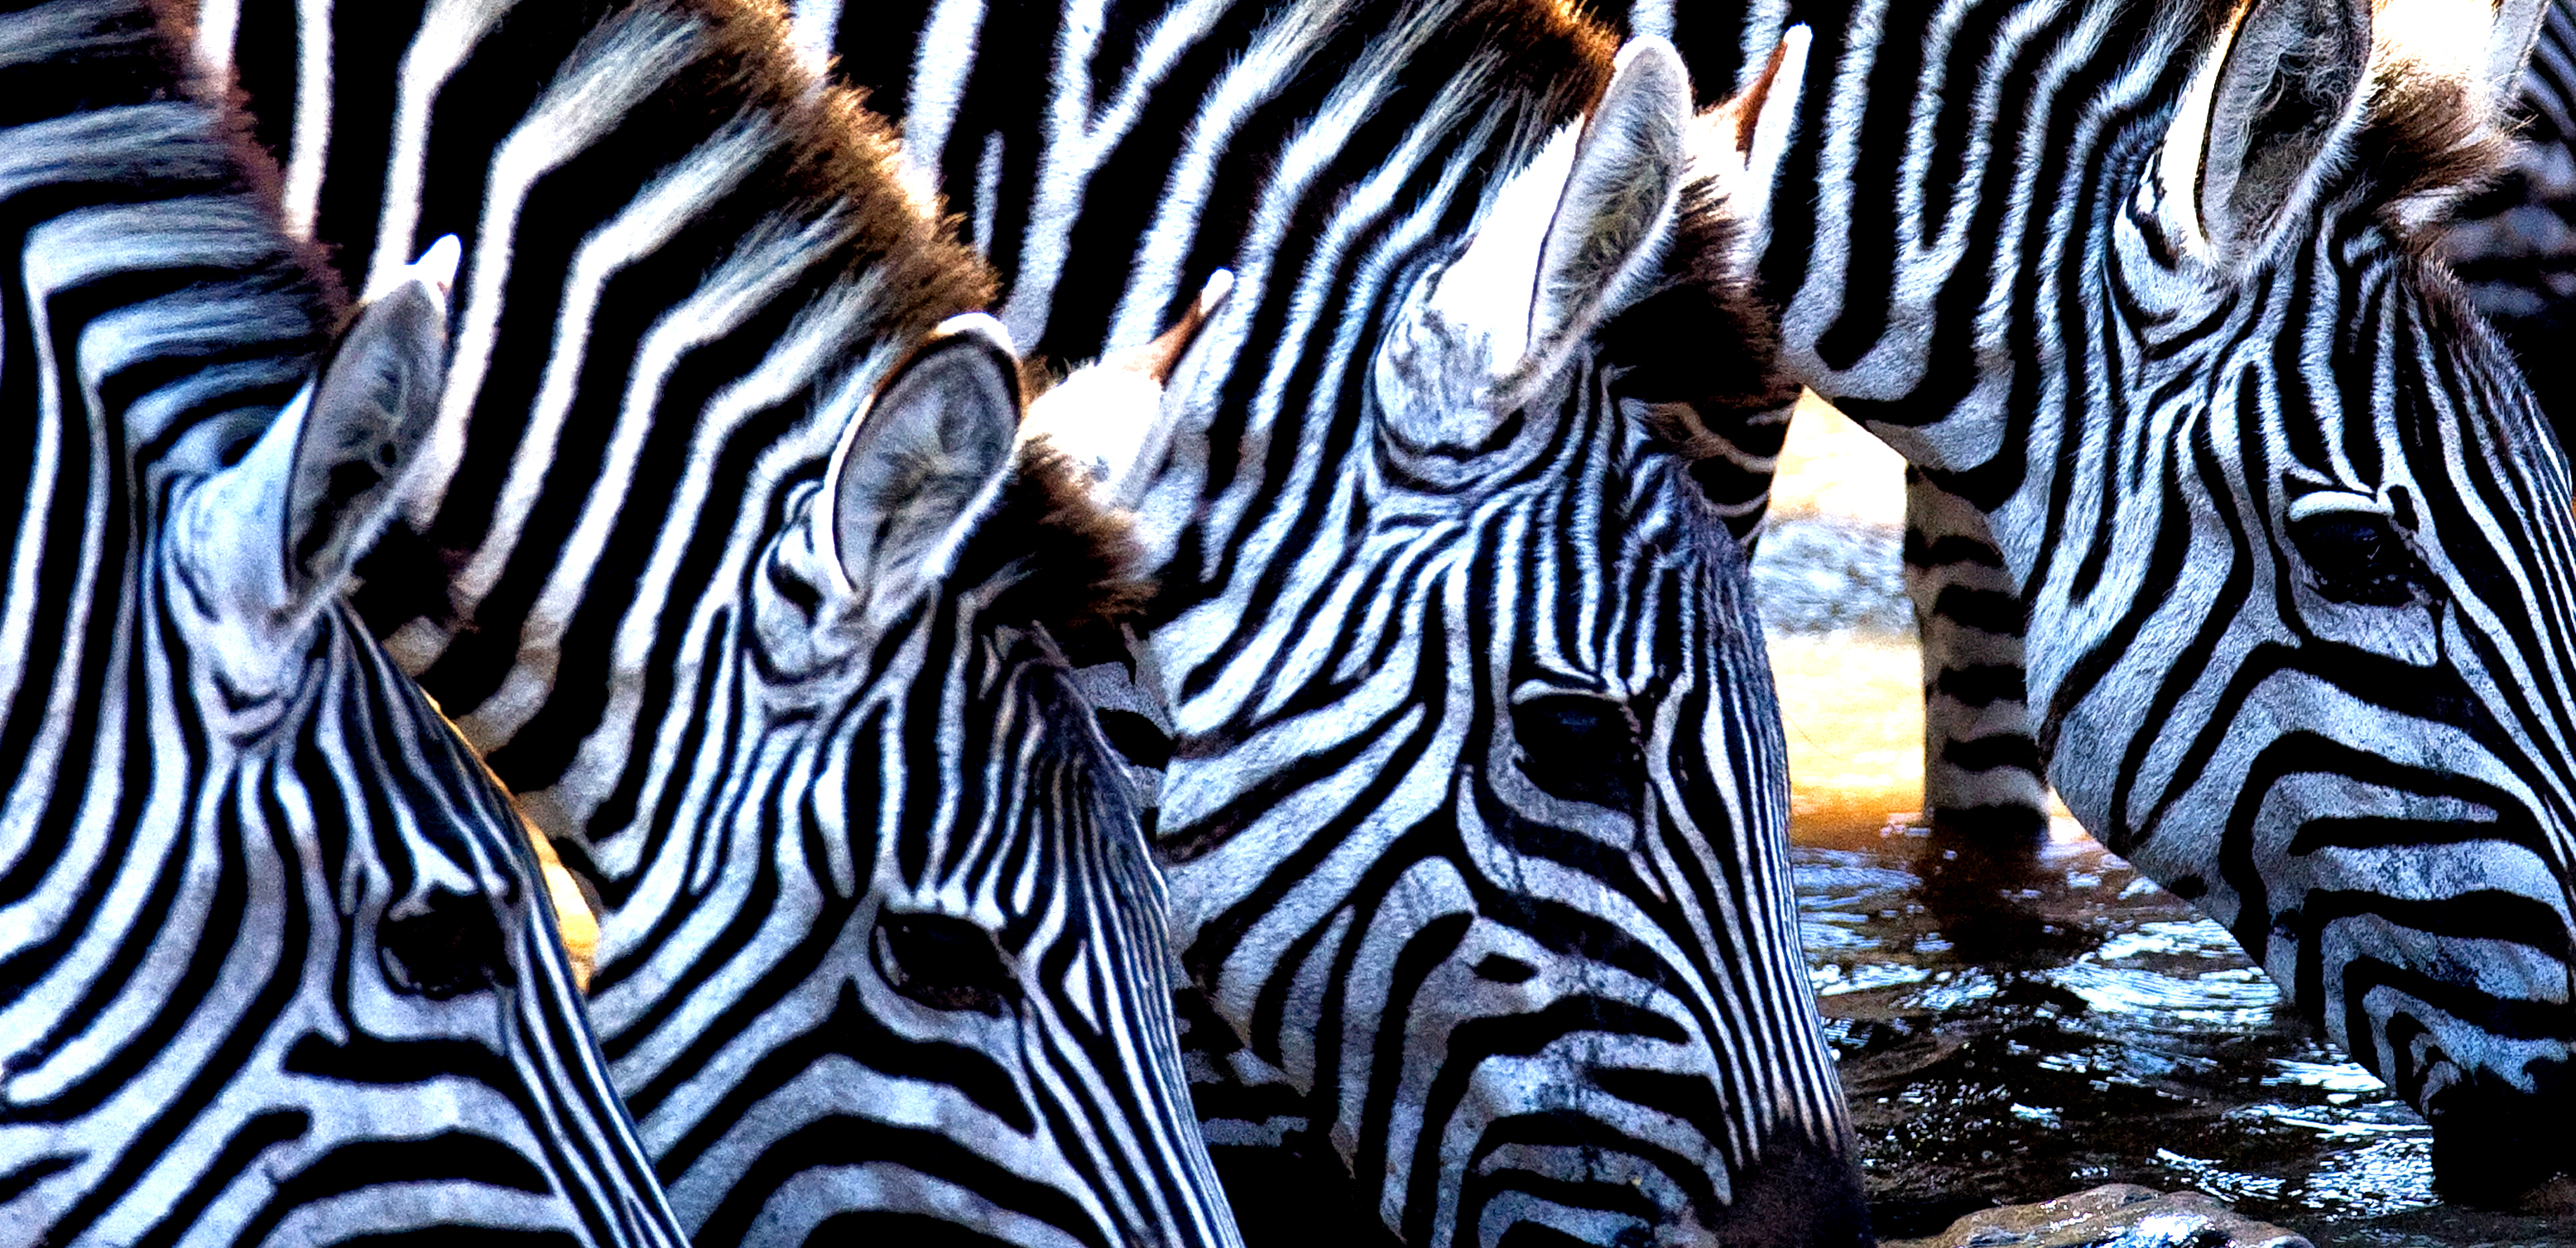 5-Zebra_close-up